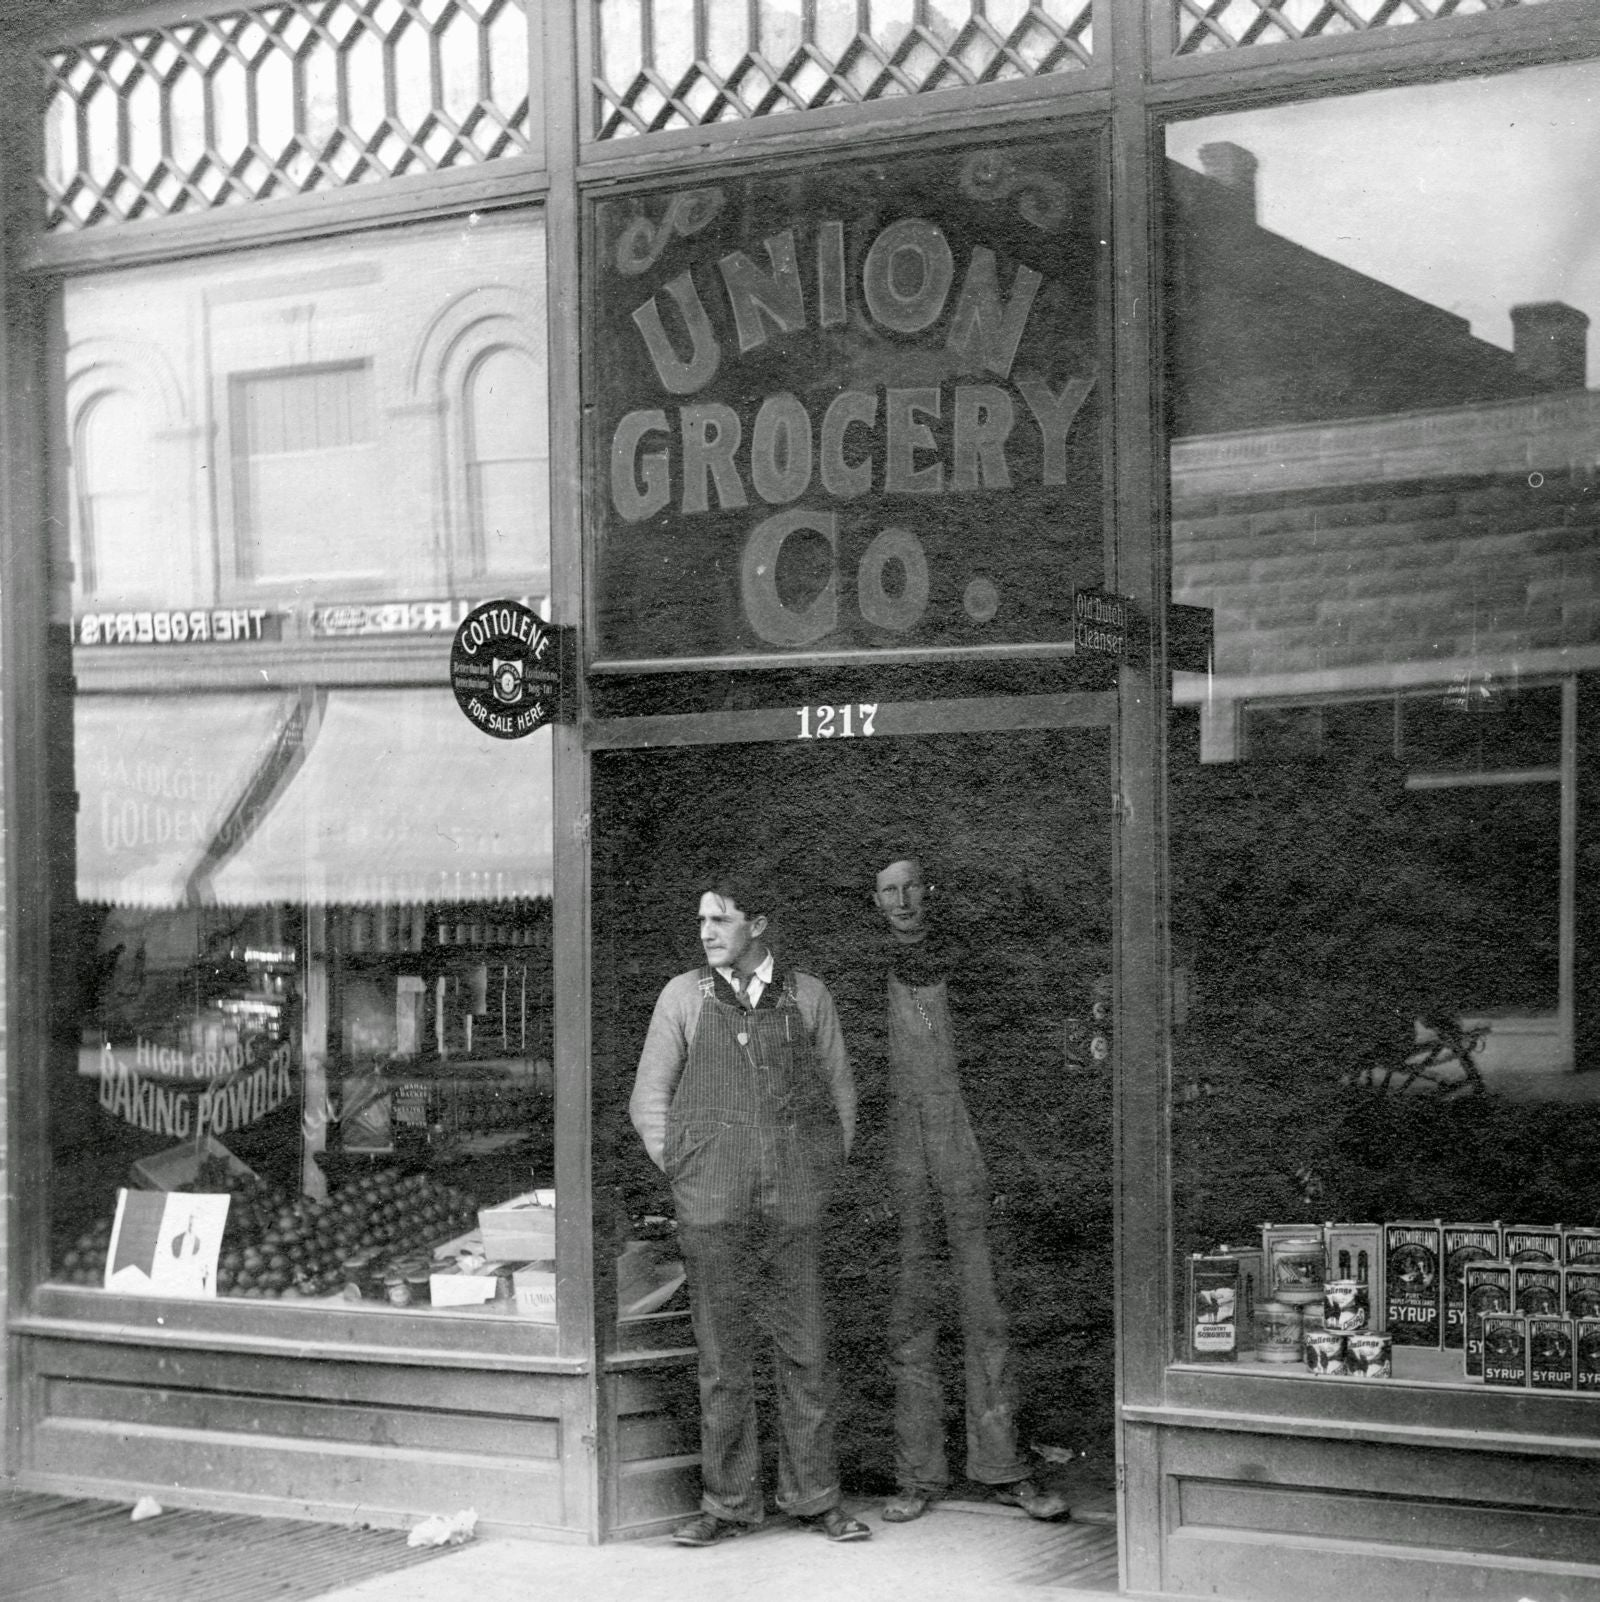 Union Grocery Co - Nampa